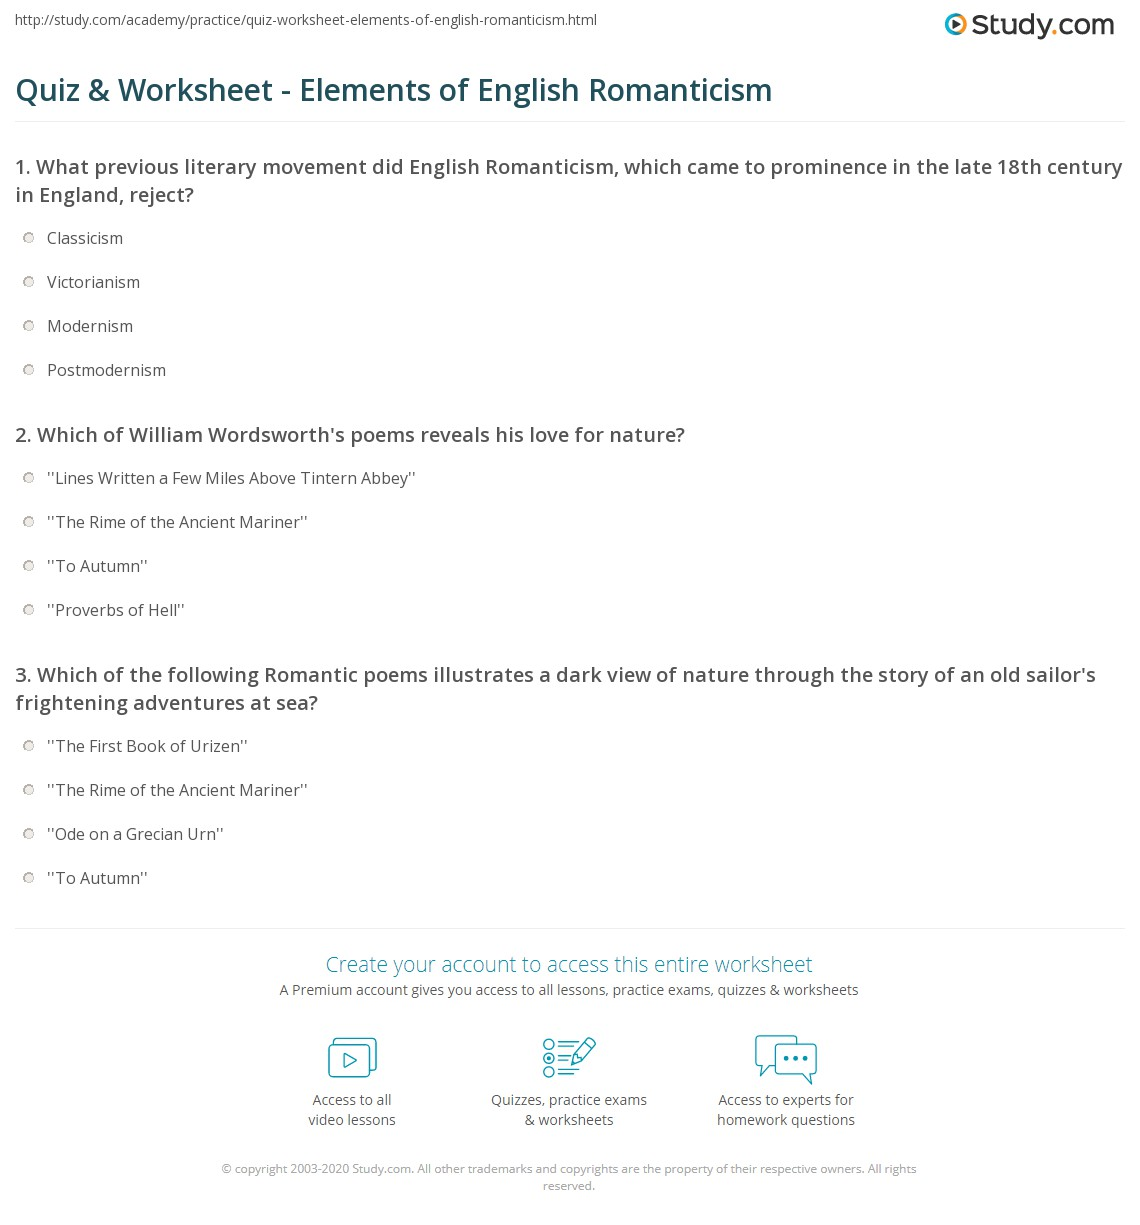 Print English Romanticism Characteristics Worksheet